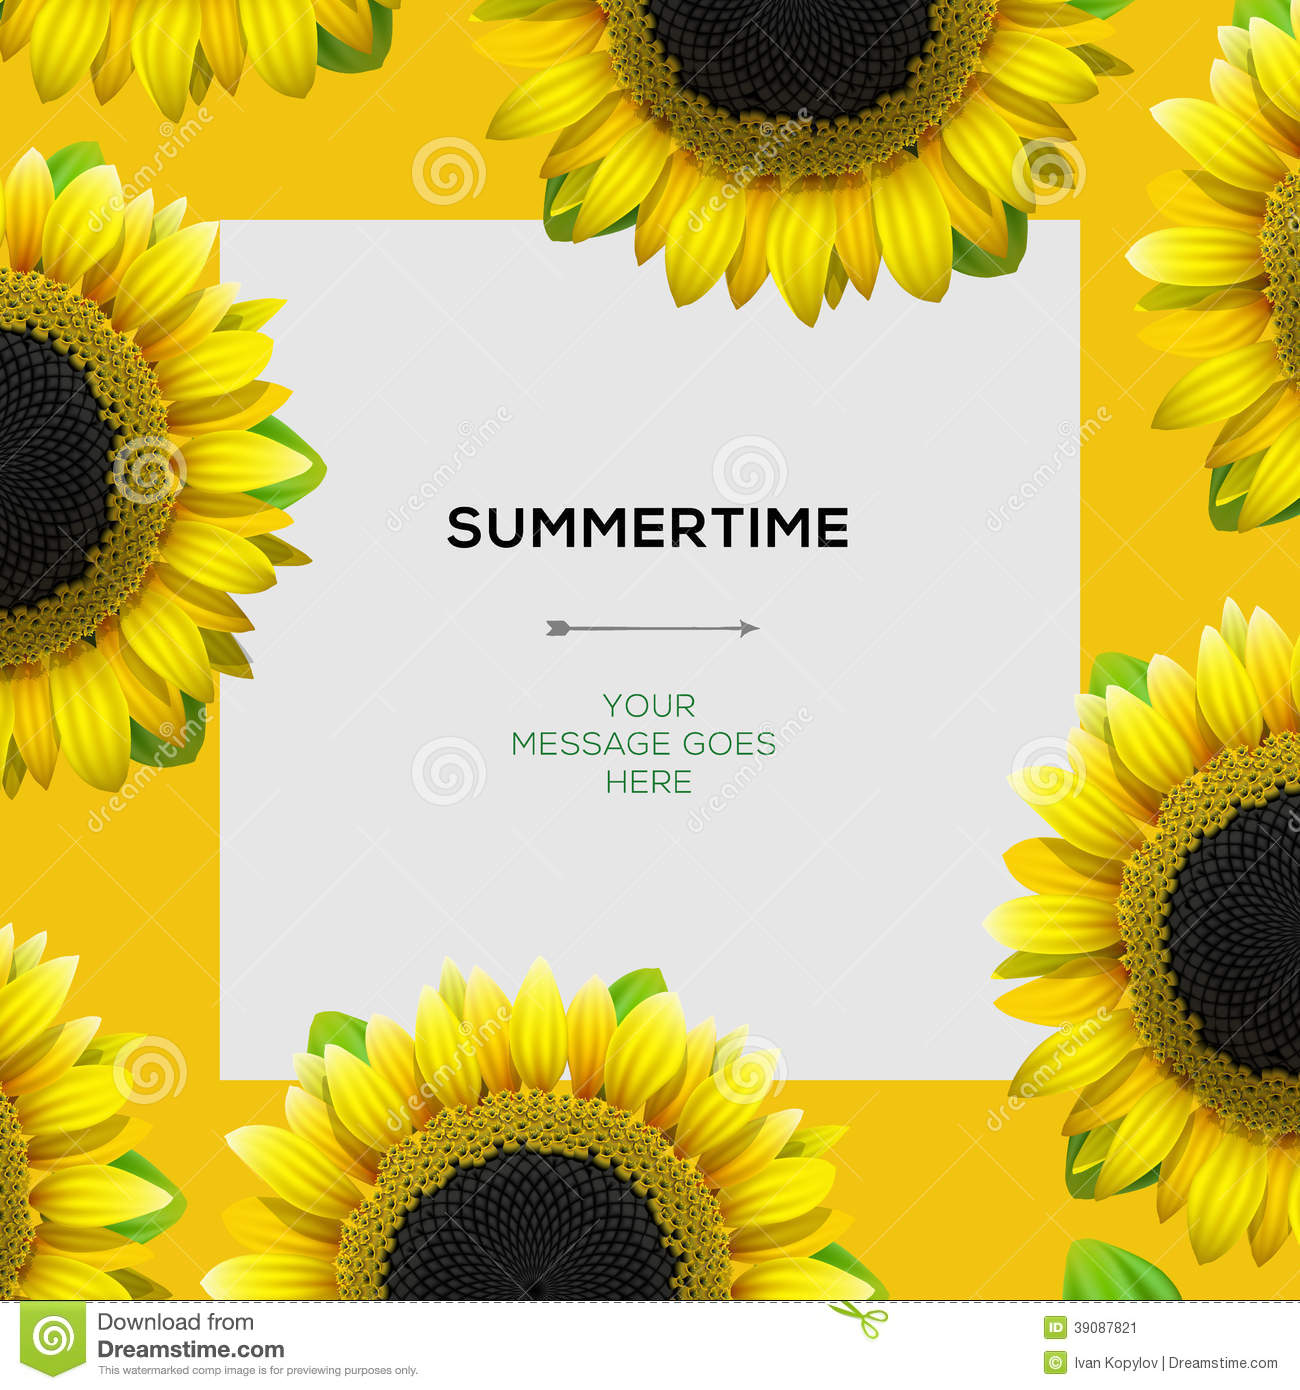 Summertime Template With Sunflowers Background Download Preview